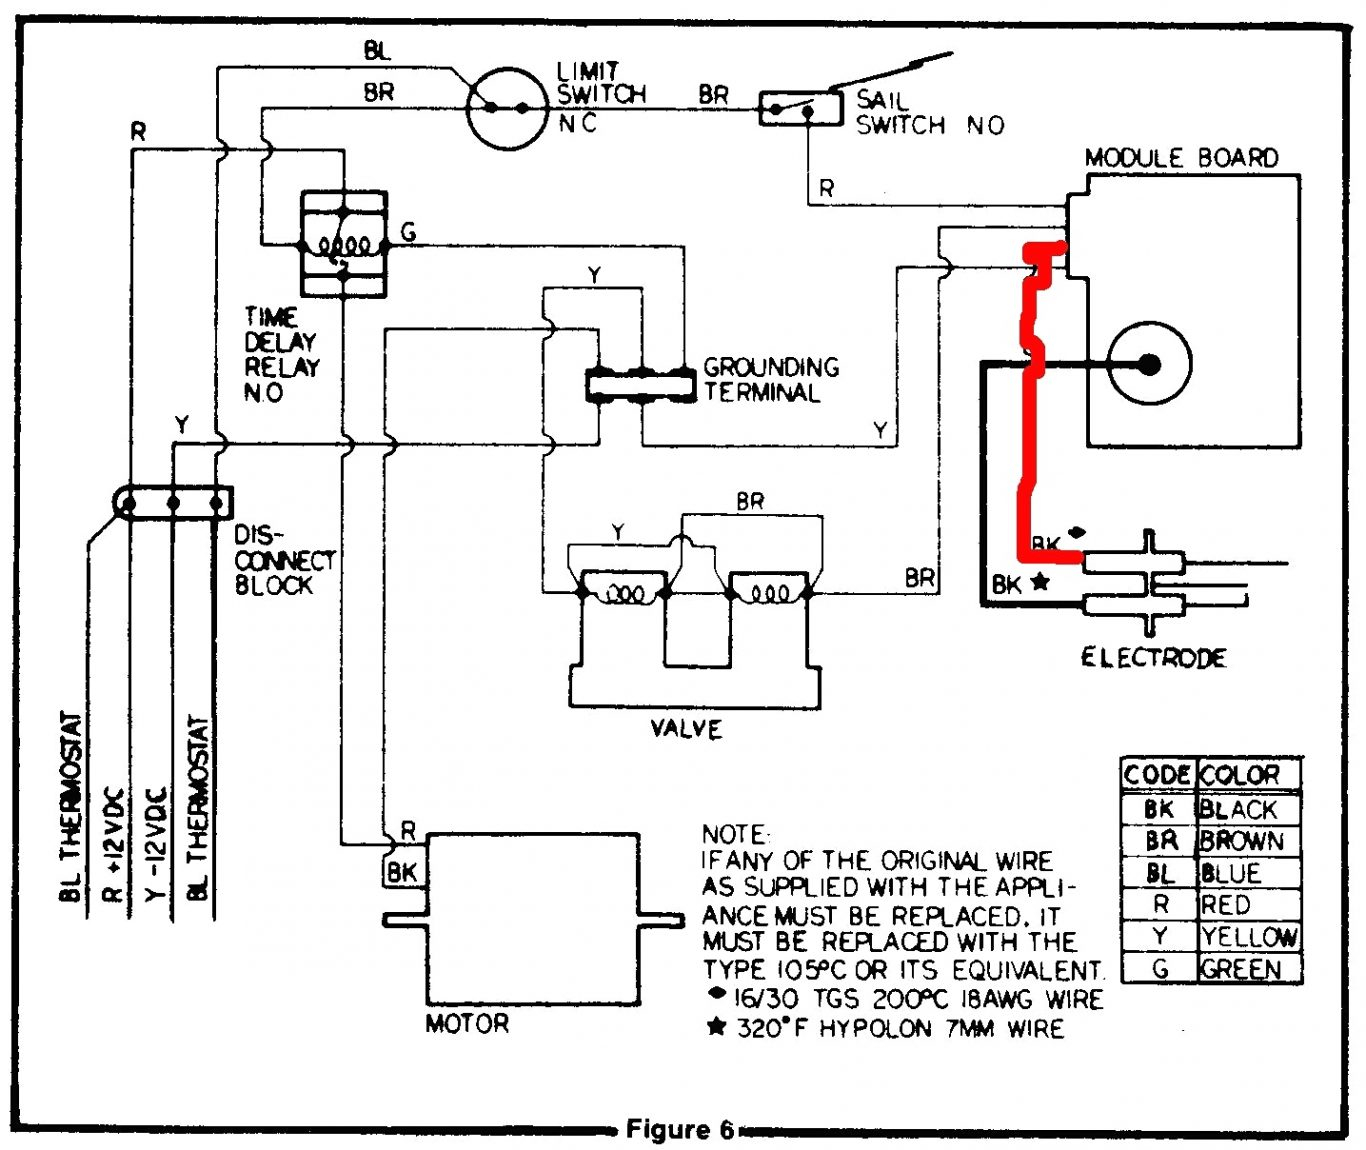 Heat Pump Thermostat Wiring Diagrams Coleman Mach Diagram Gallery Evcon Inspirational Thermostating